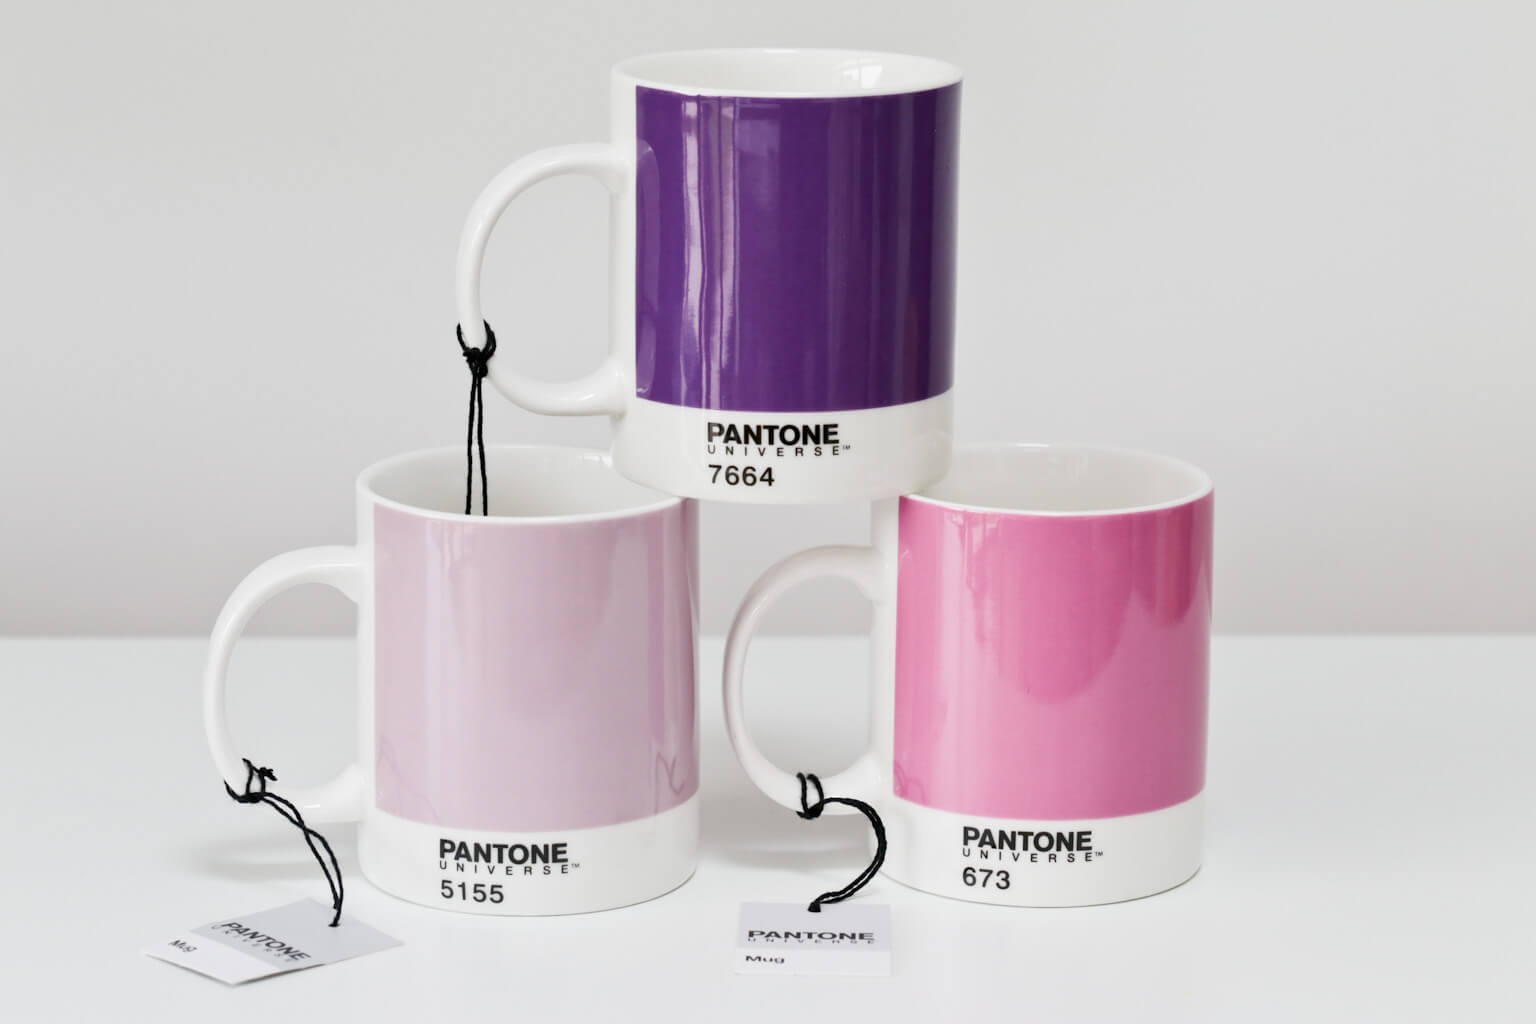 Pantone Mugs Set of 3 in purple and pink hues